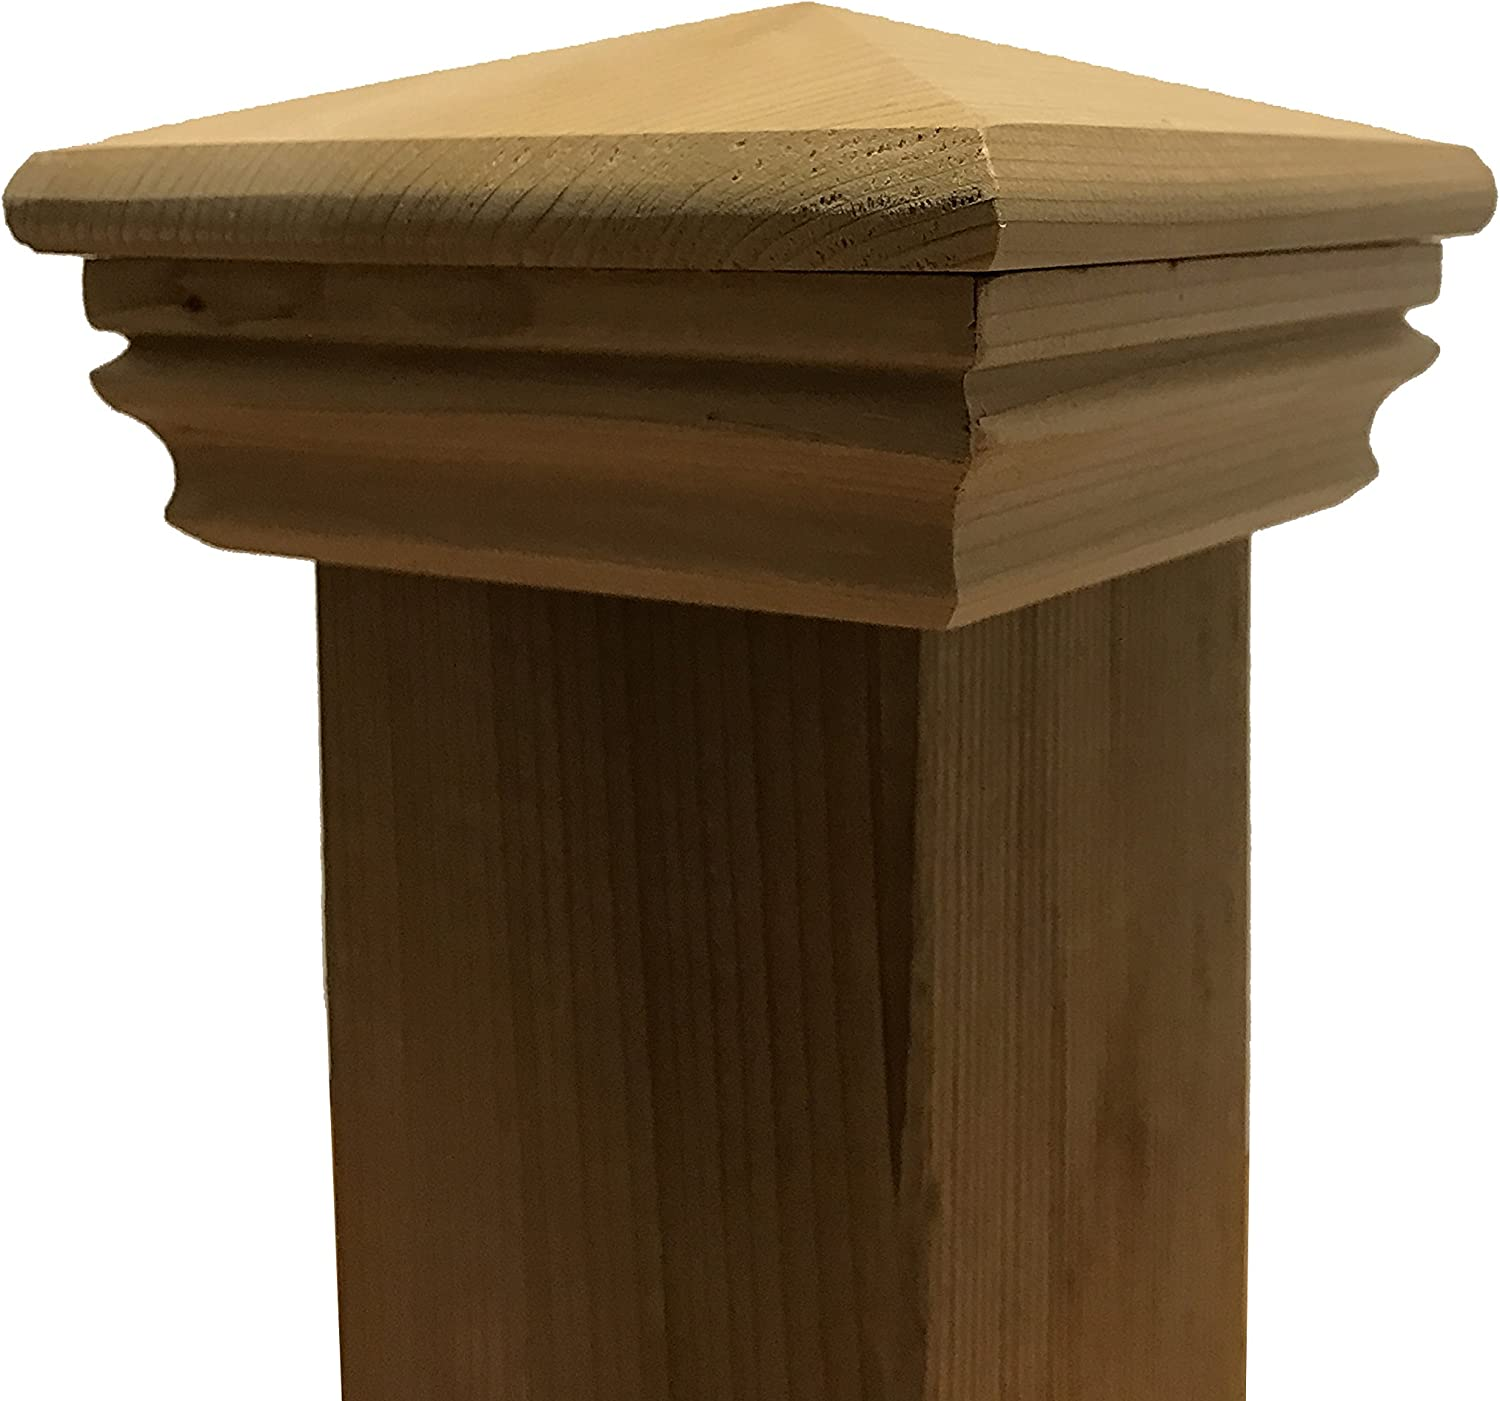 Cedar Pyramid Wood Post Cap for 3.5 x 3.5 Fence and Deck Posts